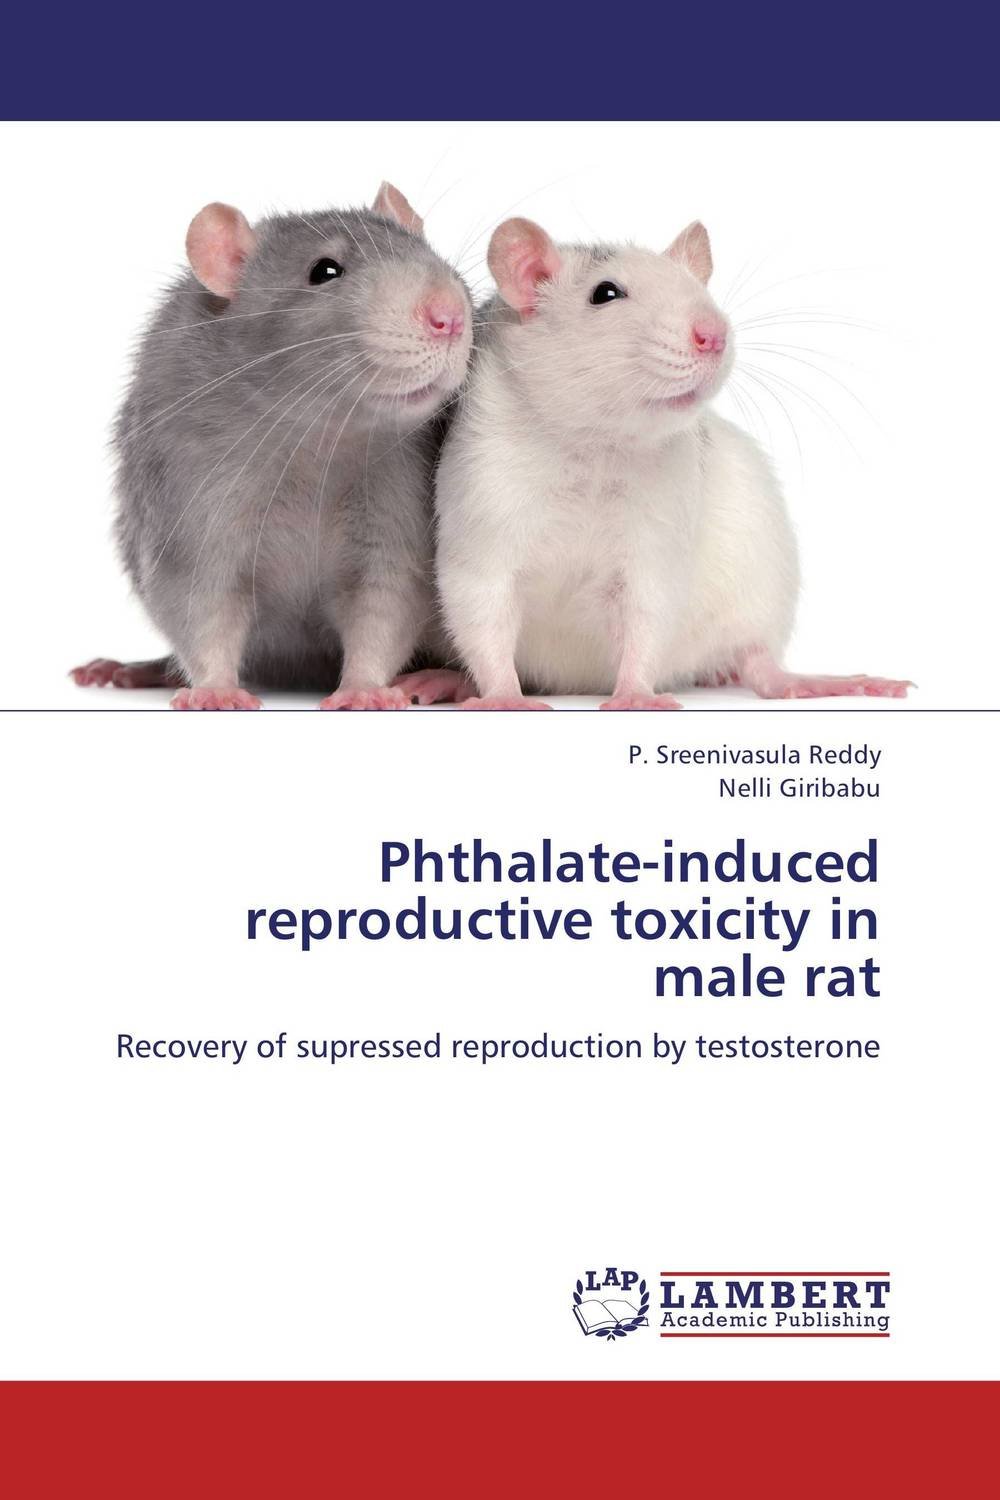 Phthalate-induced reproductive toxicity in male rat male female reproductive system model anatomy of the male female reproductive system human reproductive system gasen rzmn028